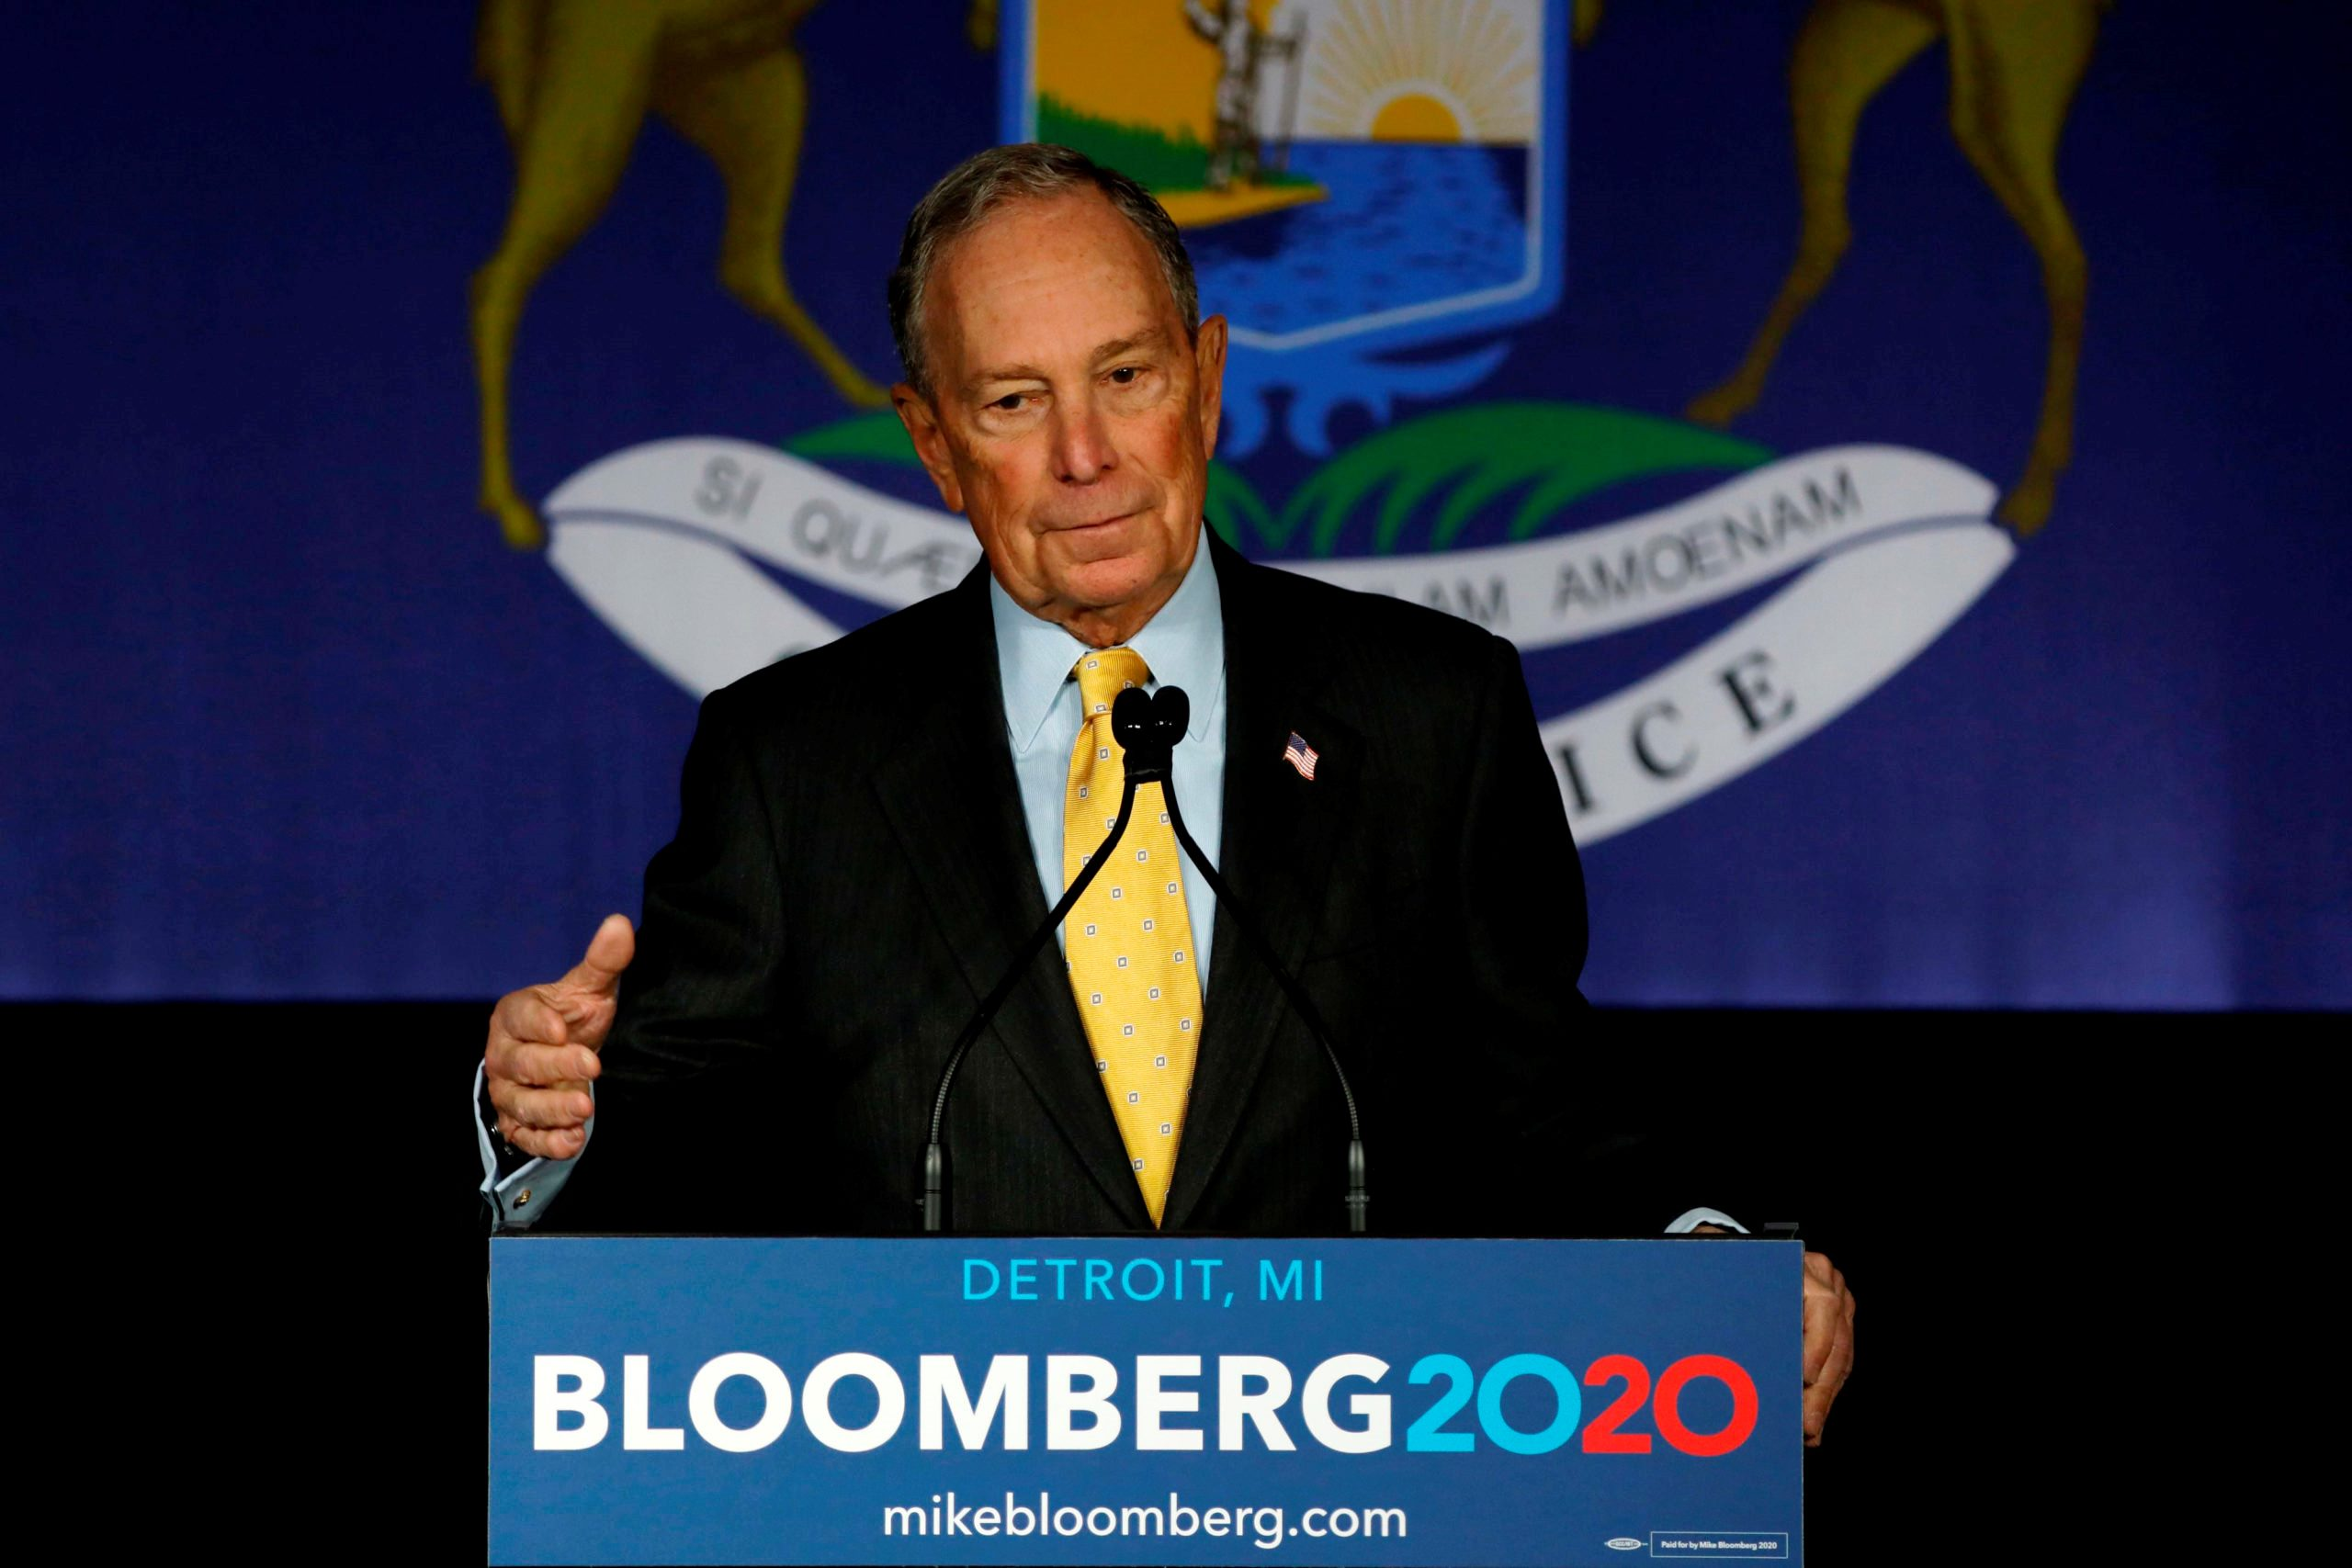 Presidential candidates attack Bloomberg for his huge spending on Campaign